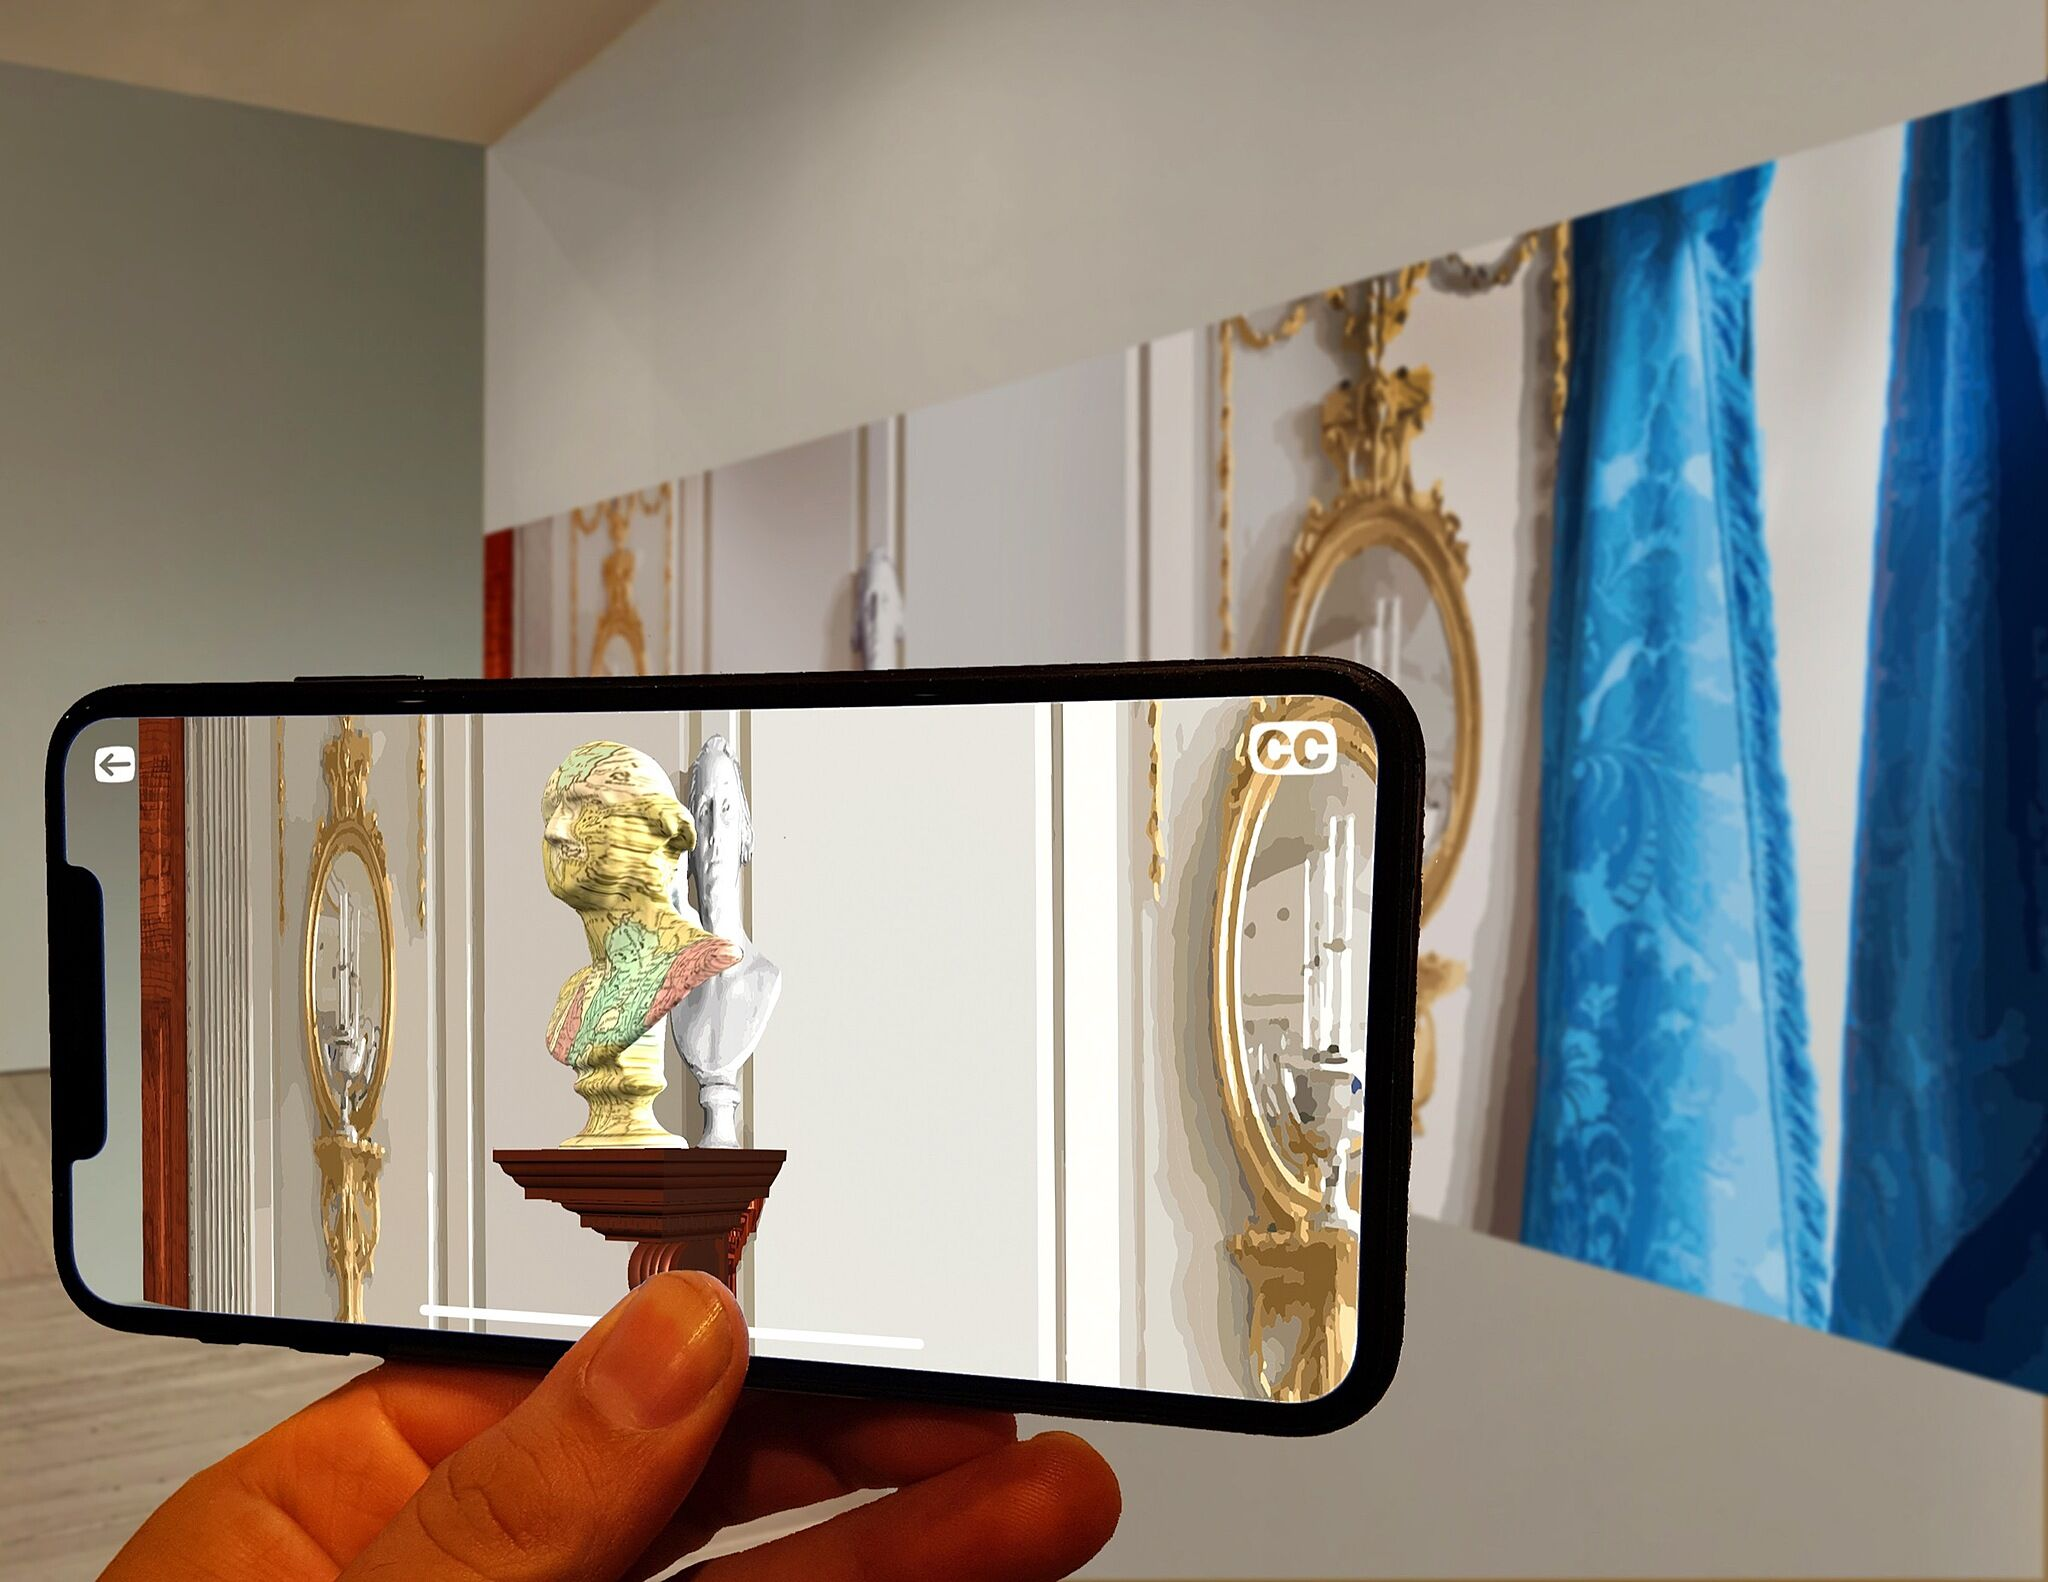 An image of a phone being held up in front of artwork on the wall